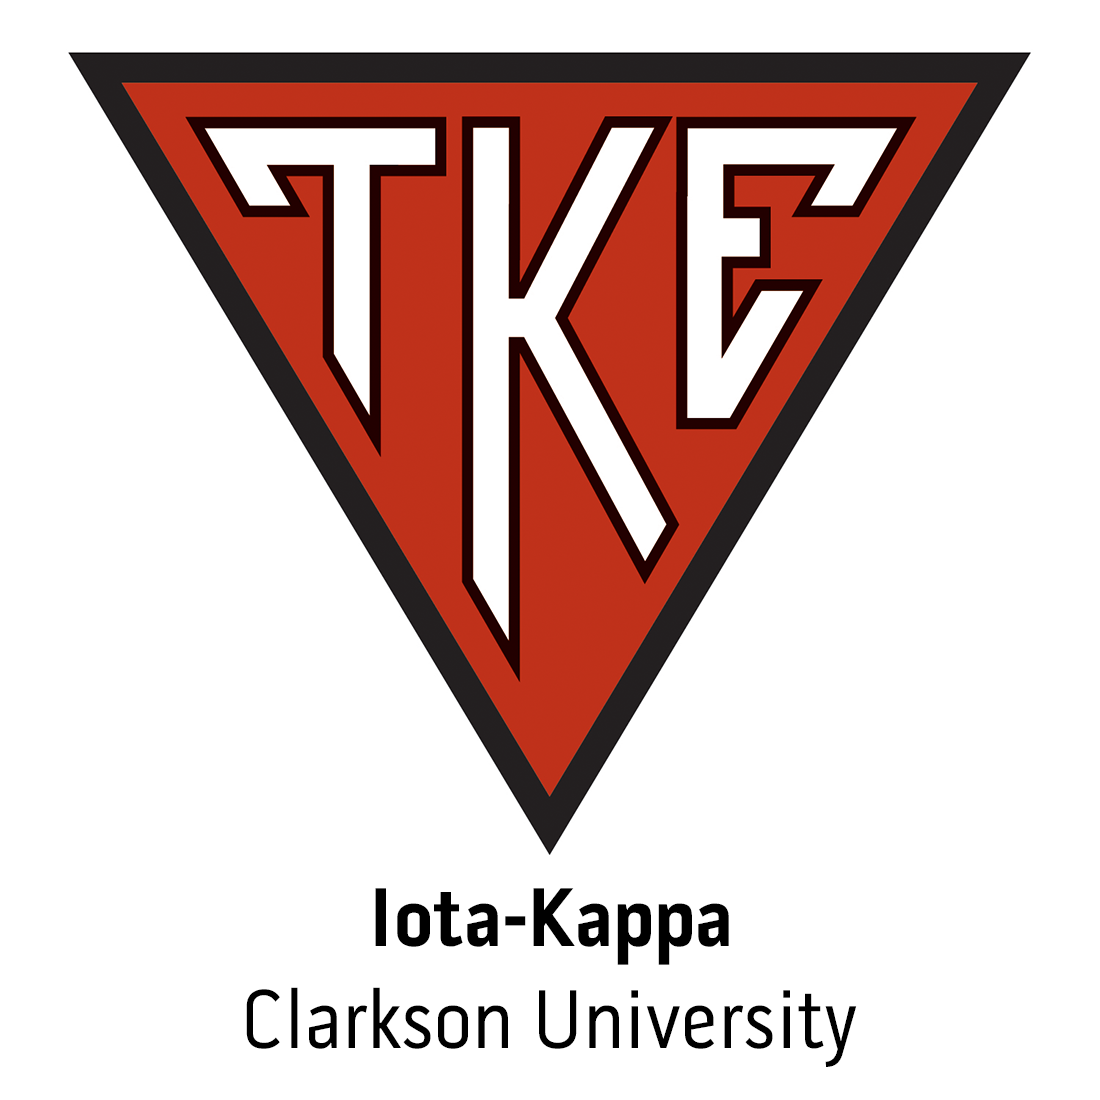 Iota-Kappa Chapter at Clarkson University